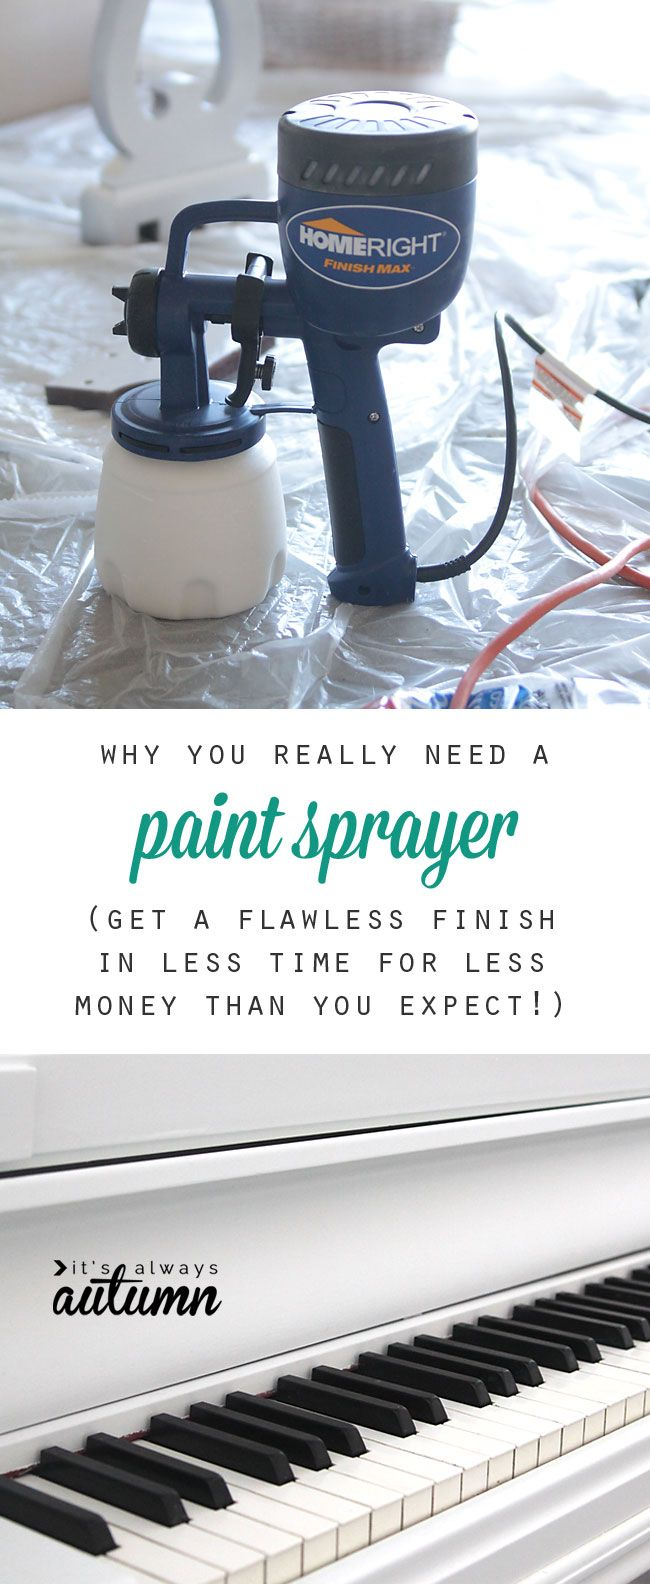 for perfectly painted furniture, chalk paint is not the answer - a paint sprayer is! It's easy to use for a flawless finish in no time - and it costs less than you think! plus NO brush strokes.